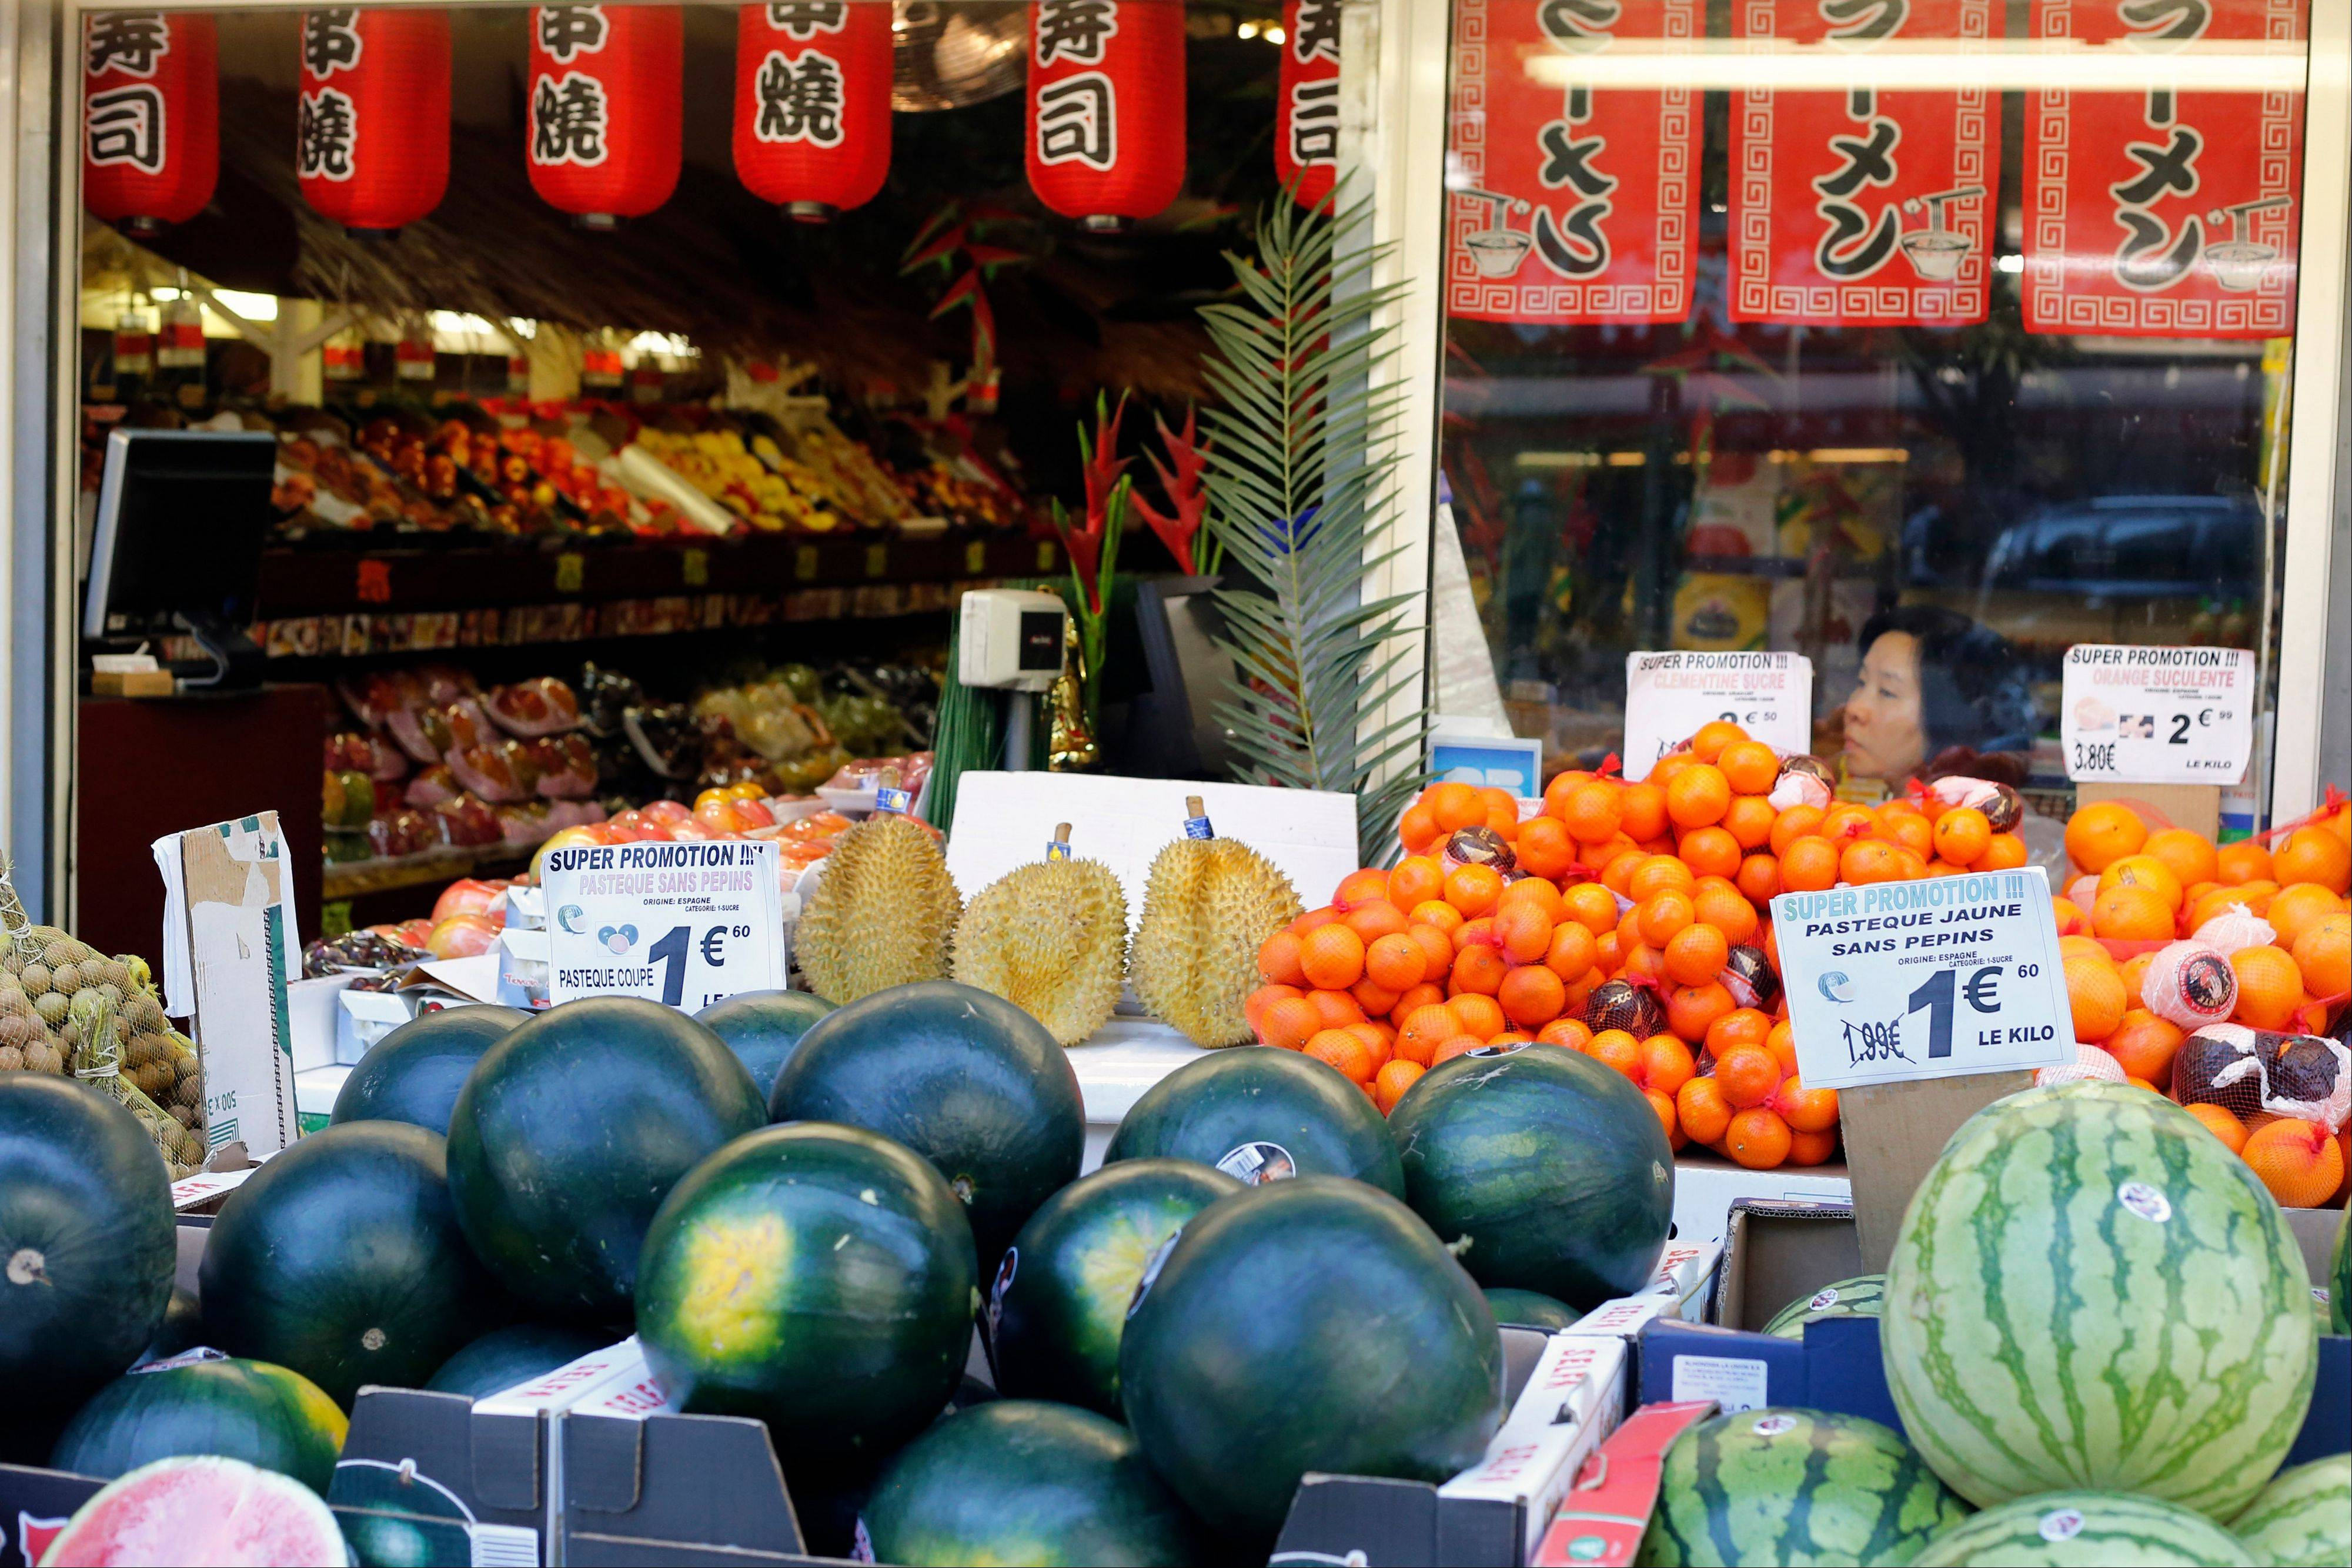 A woman looks out a window at a fruit stand at the Chinese quarter in the 13th district of Paris. This is the largest Chinatown in Europe, and its hidden charms include, among other things, an impressive diversity, drawing on the heritage of French colonies like Vietnam, Cambodia and Laos as well as other parts of Southeast Asia.